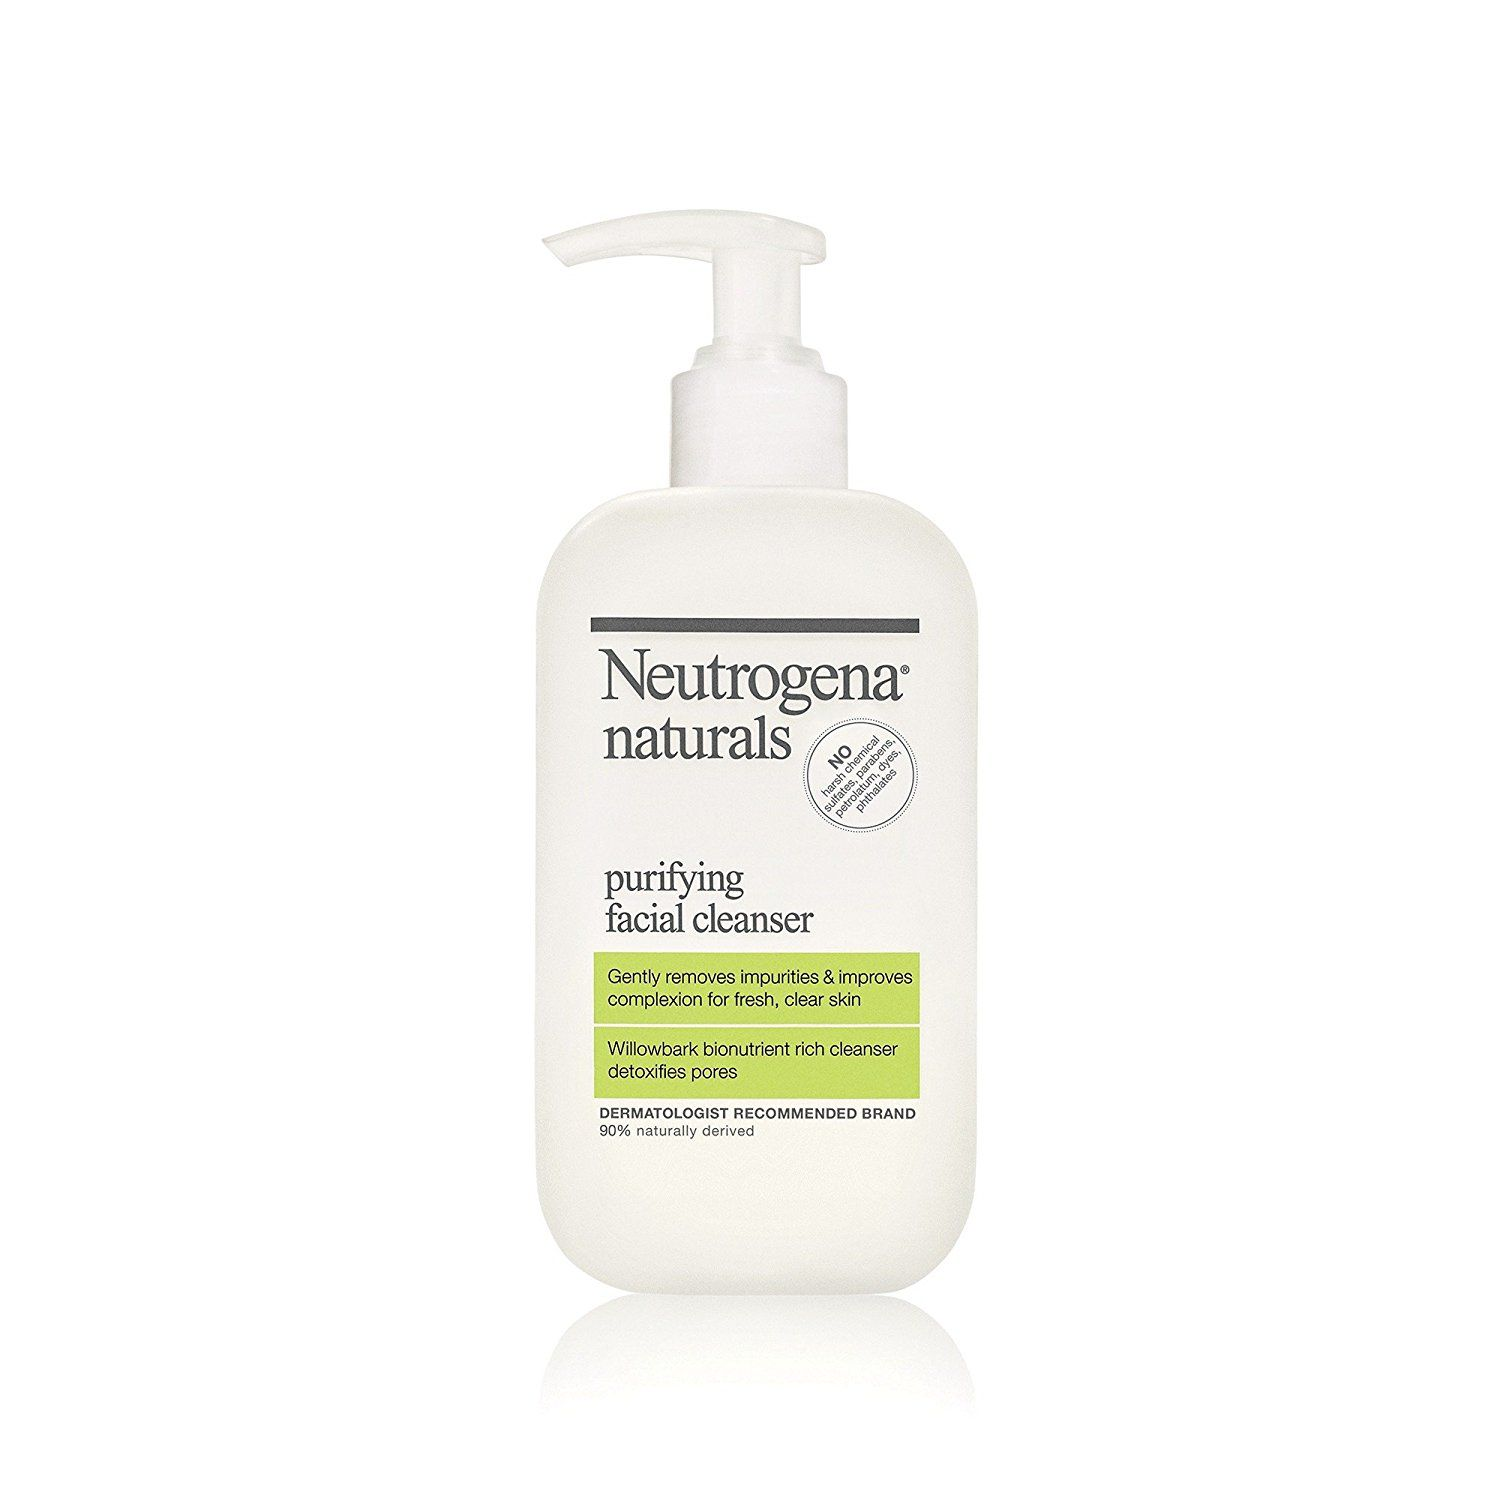 Neutrogena Naturals Purifying Facial Cleanser 6 Ounce Special